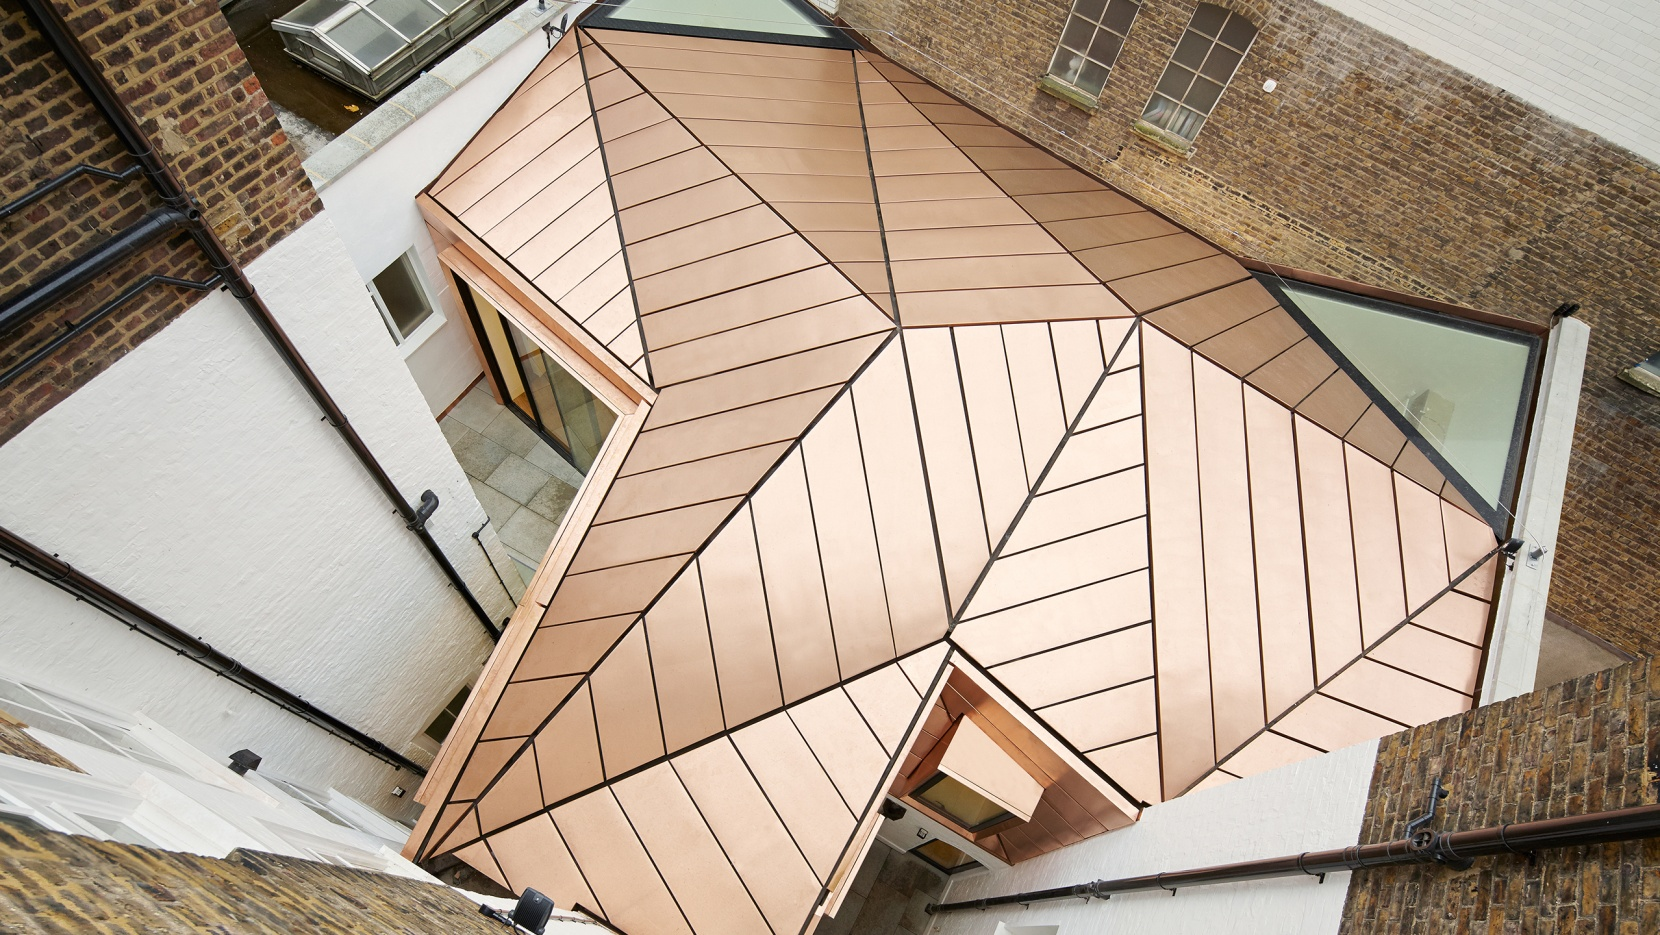 When A Copper Roof Steals The Show In A Working